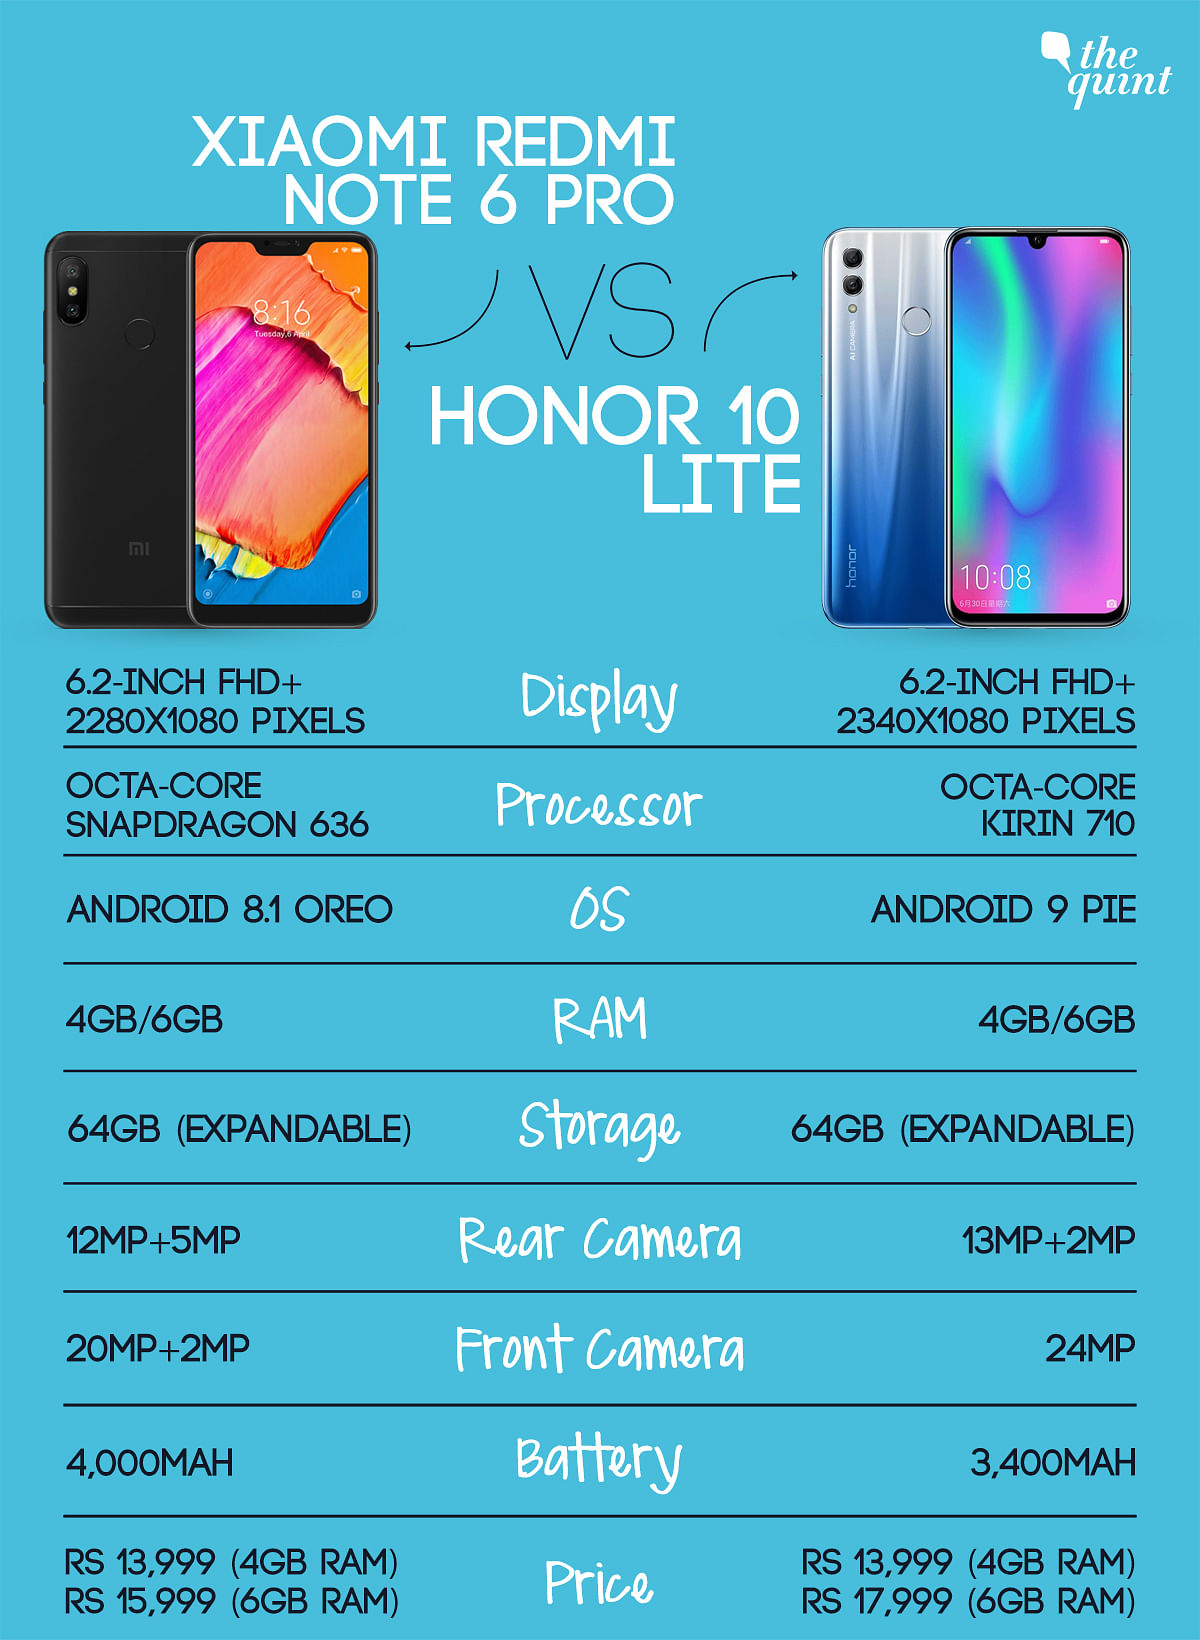 Honor 10 Lite vs Xiaomi Redmi Note 6 Pro: Which One Should You Buy